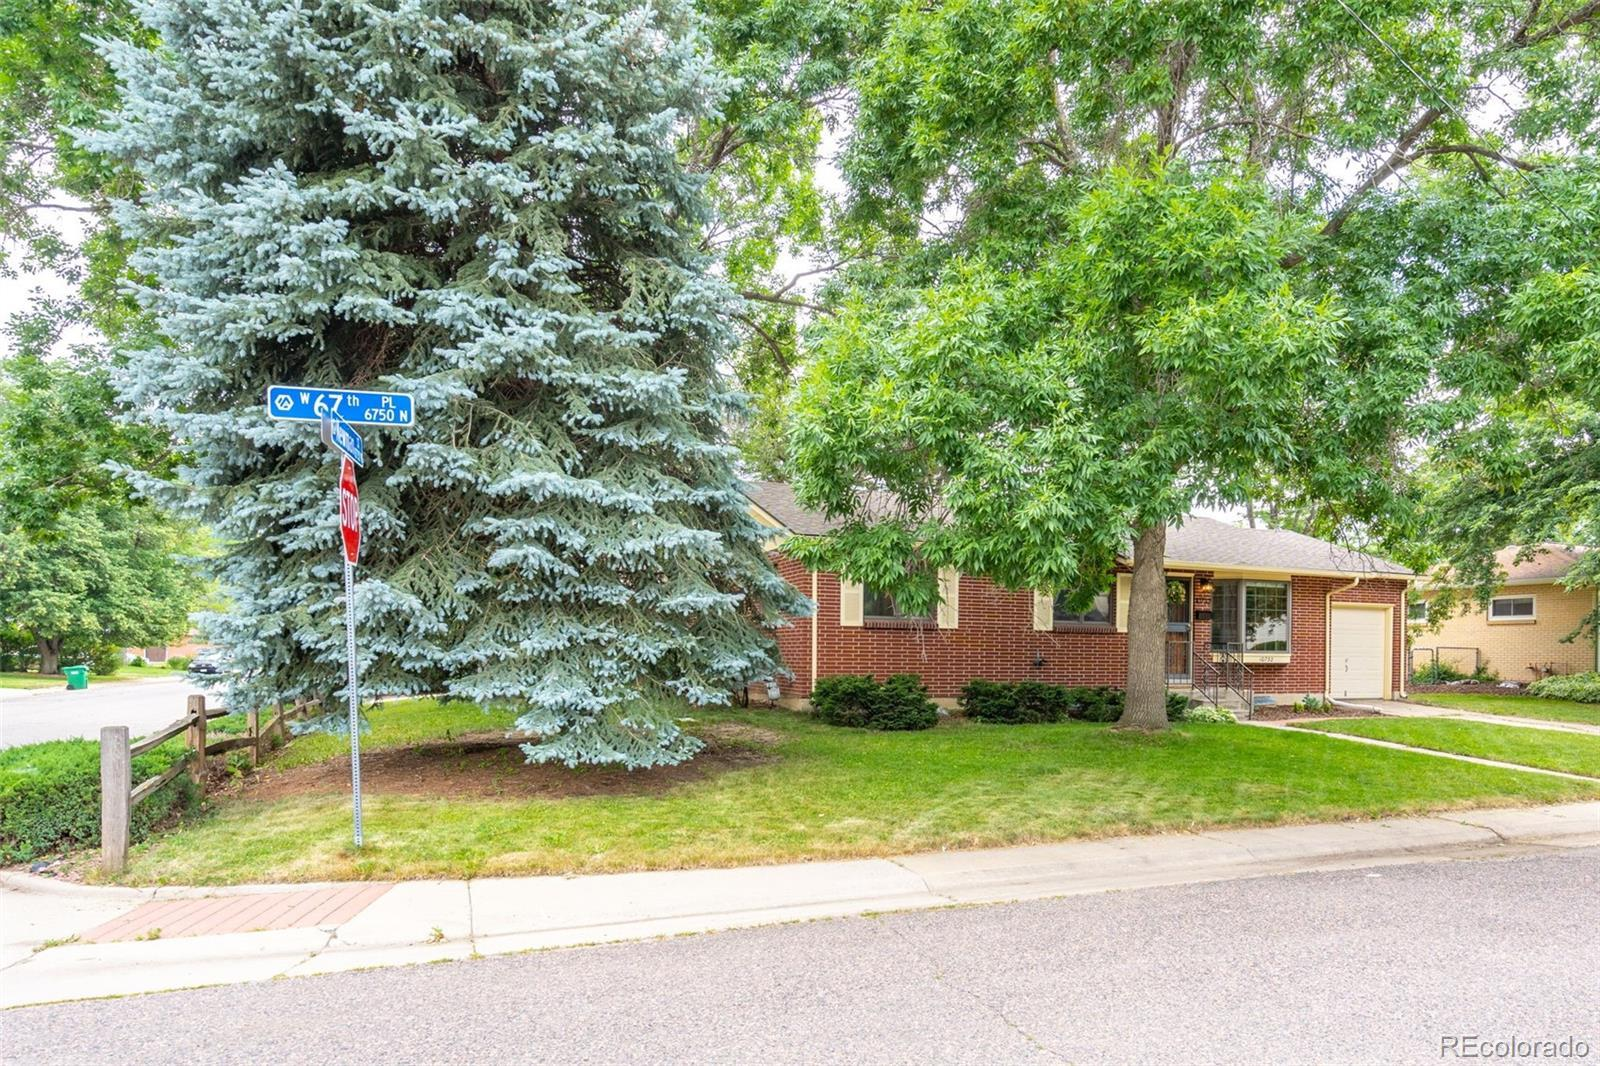 10732 W 67th Place, Arvada, CO 80004 - #: 5251551